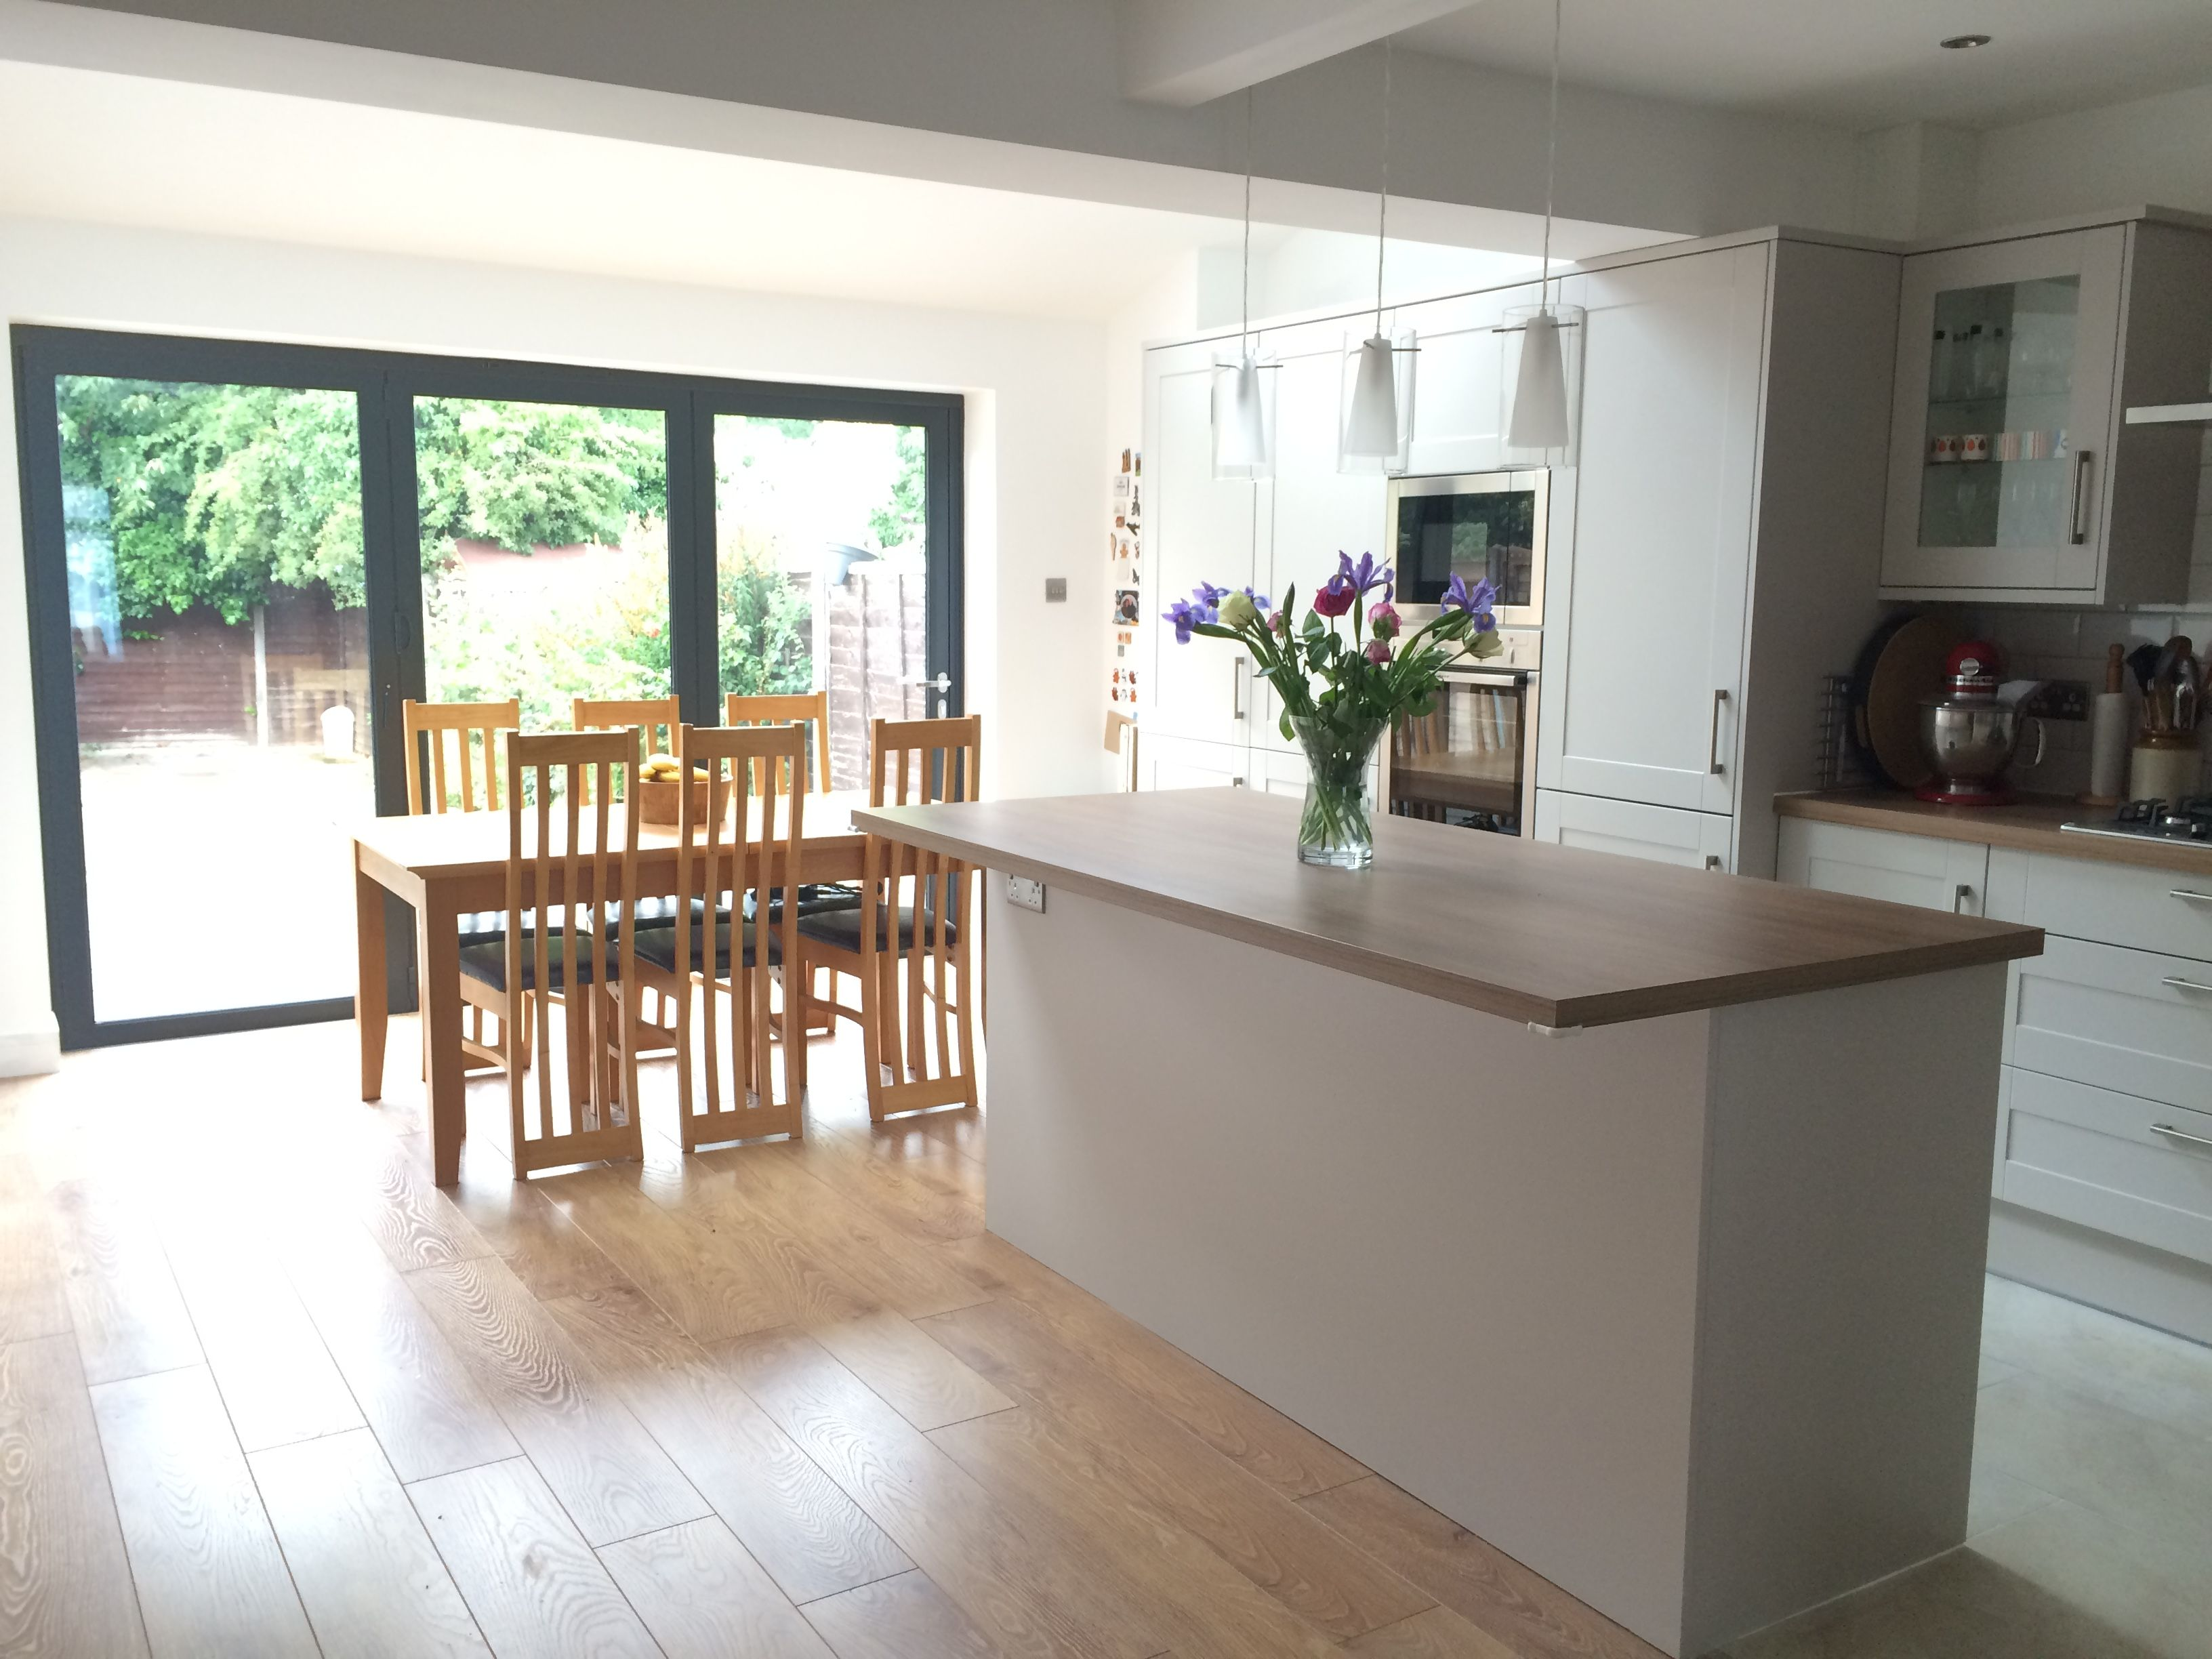 Kitchen Extensions With Velux Windows Kitchen Extension With Bifold Doors And Vaulted Roof With Velux